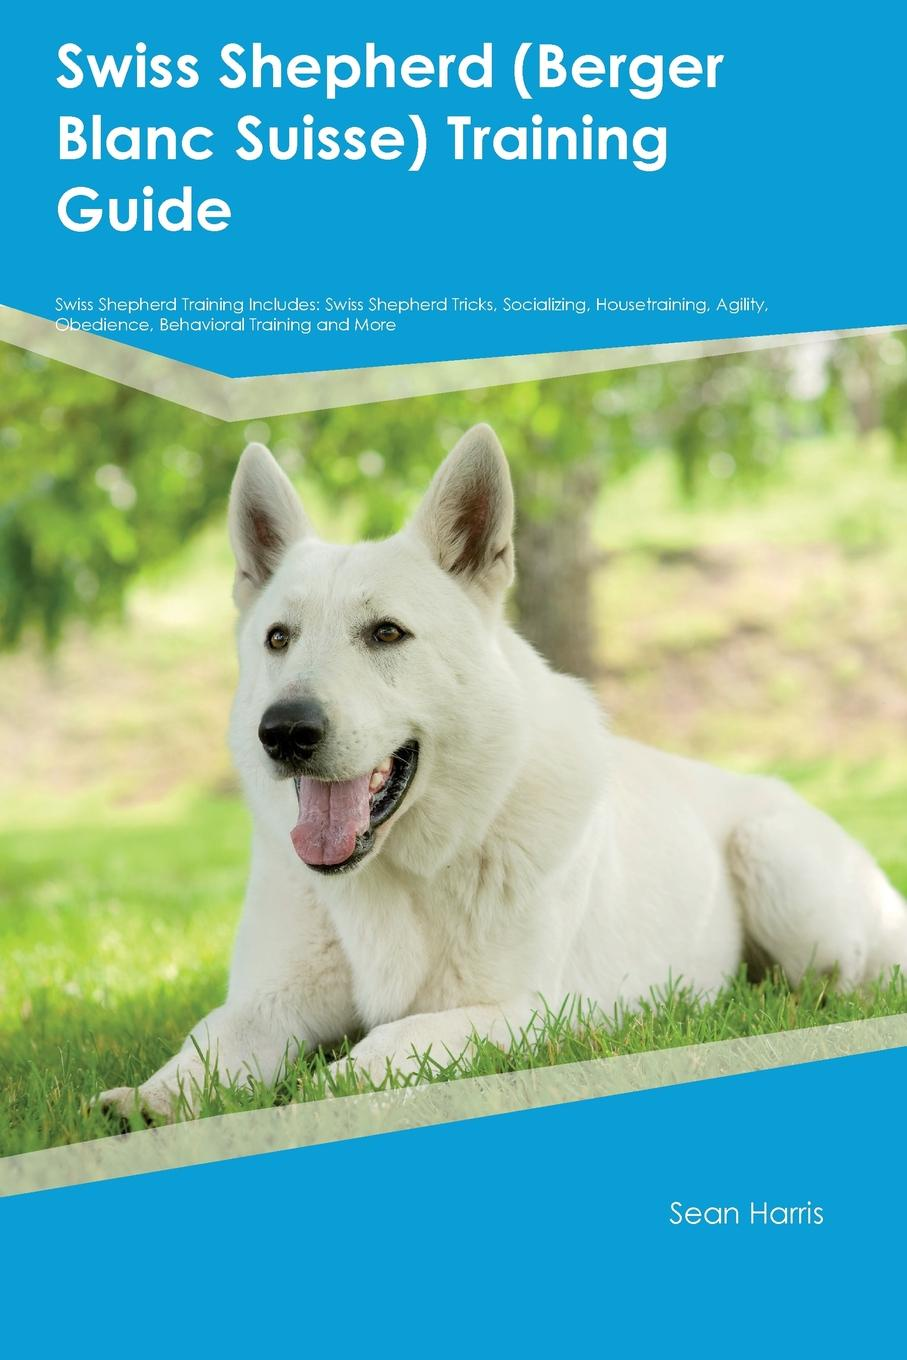 Gavin Grant Swiss Shepherd (Berger Blanc Suisse) Training Guide Includes. Tricks, Socializing, Housetraining, Agility, Obedience, Behavioral and More